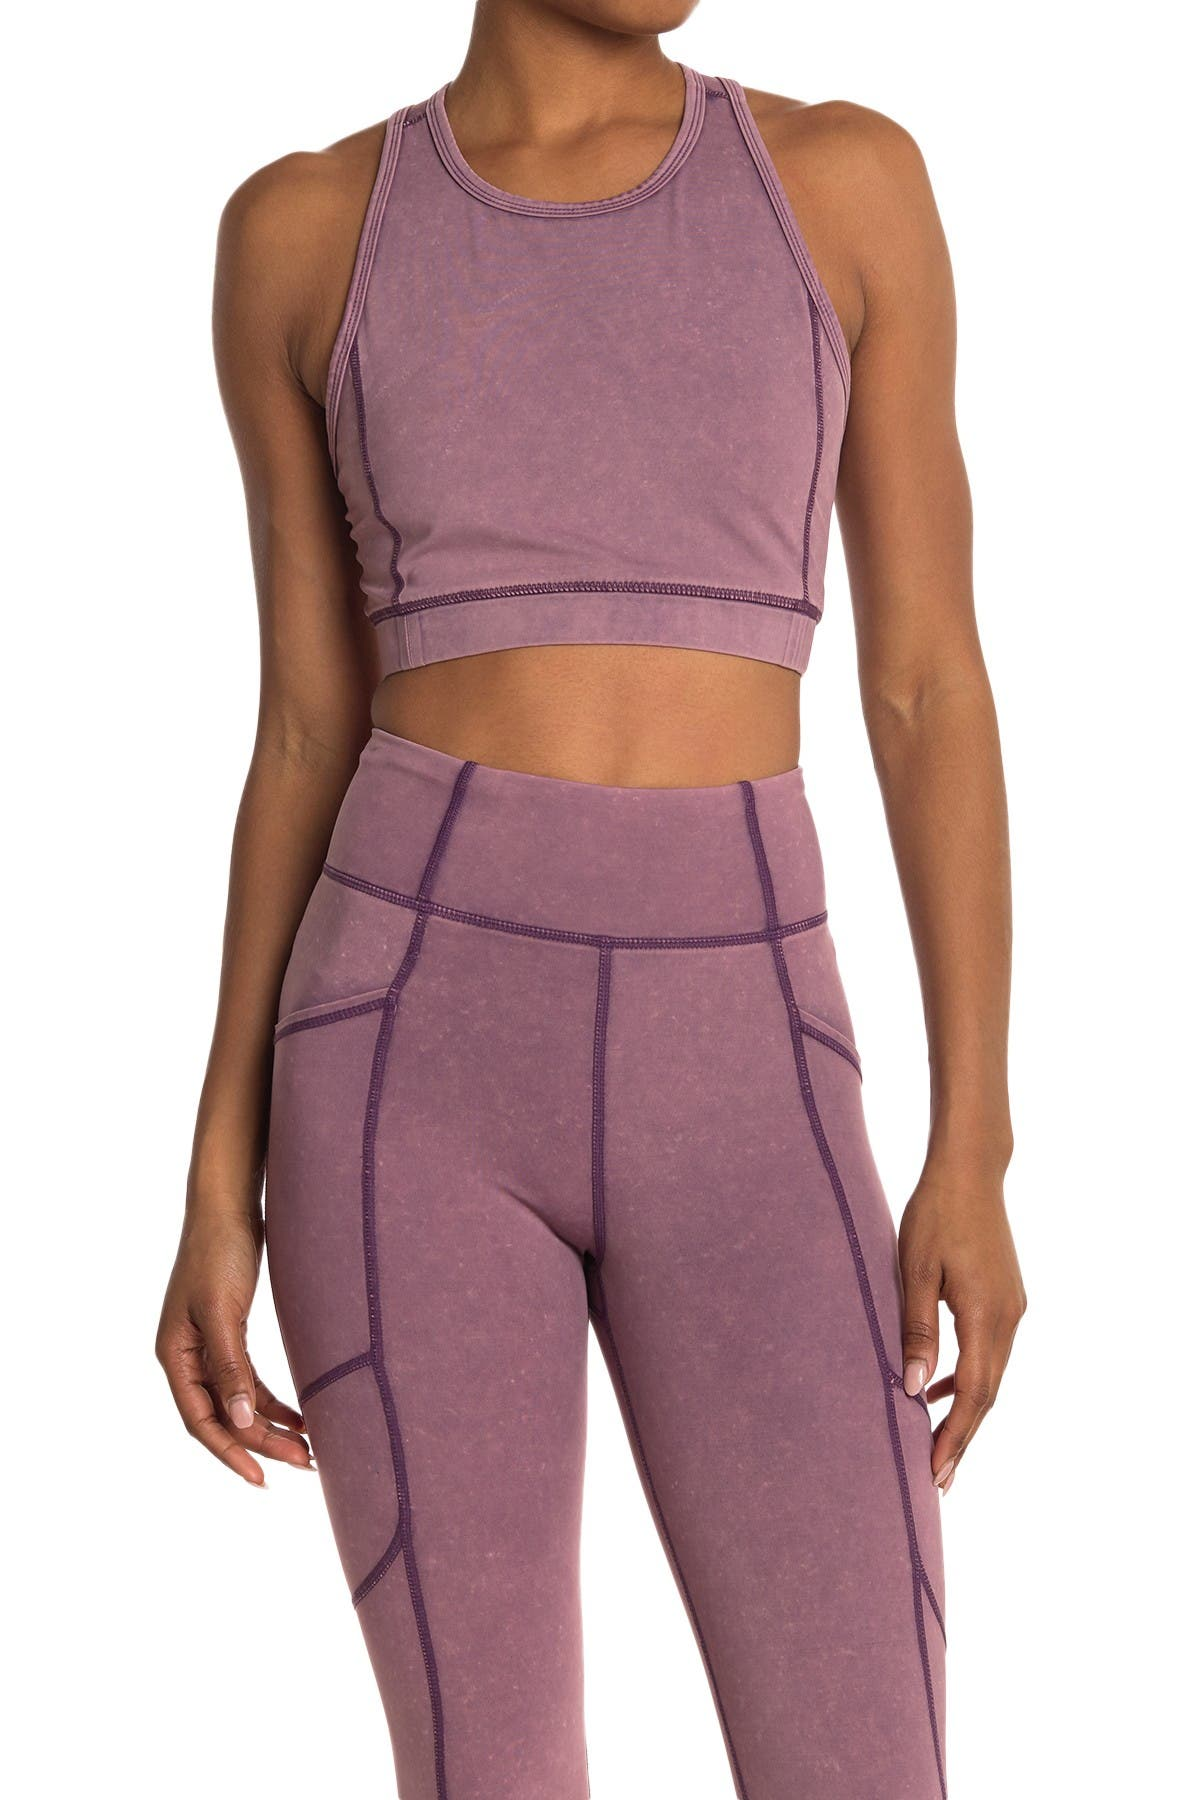 Image of Threads 4 Thought Kensi Mineral Wash Sports Bra